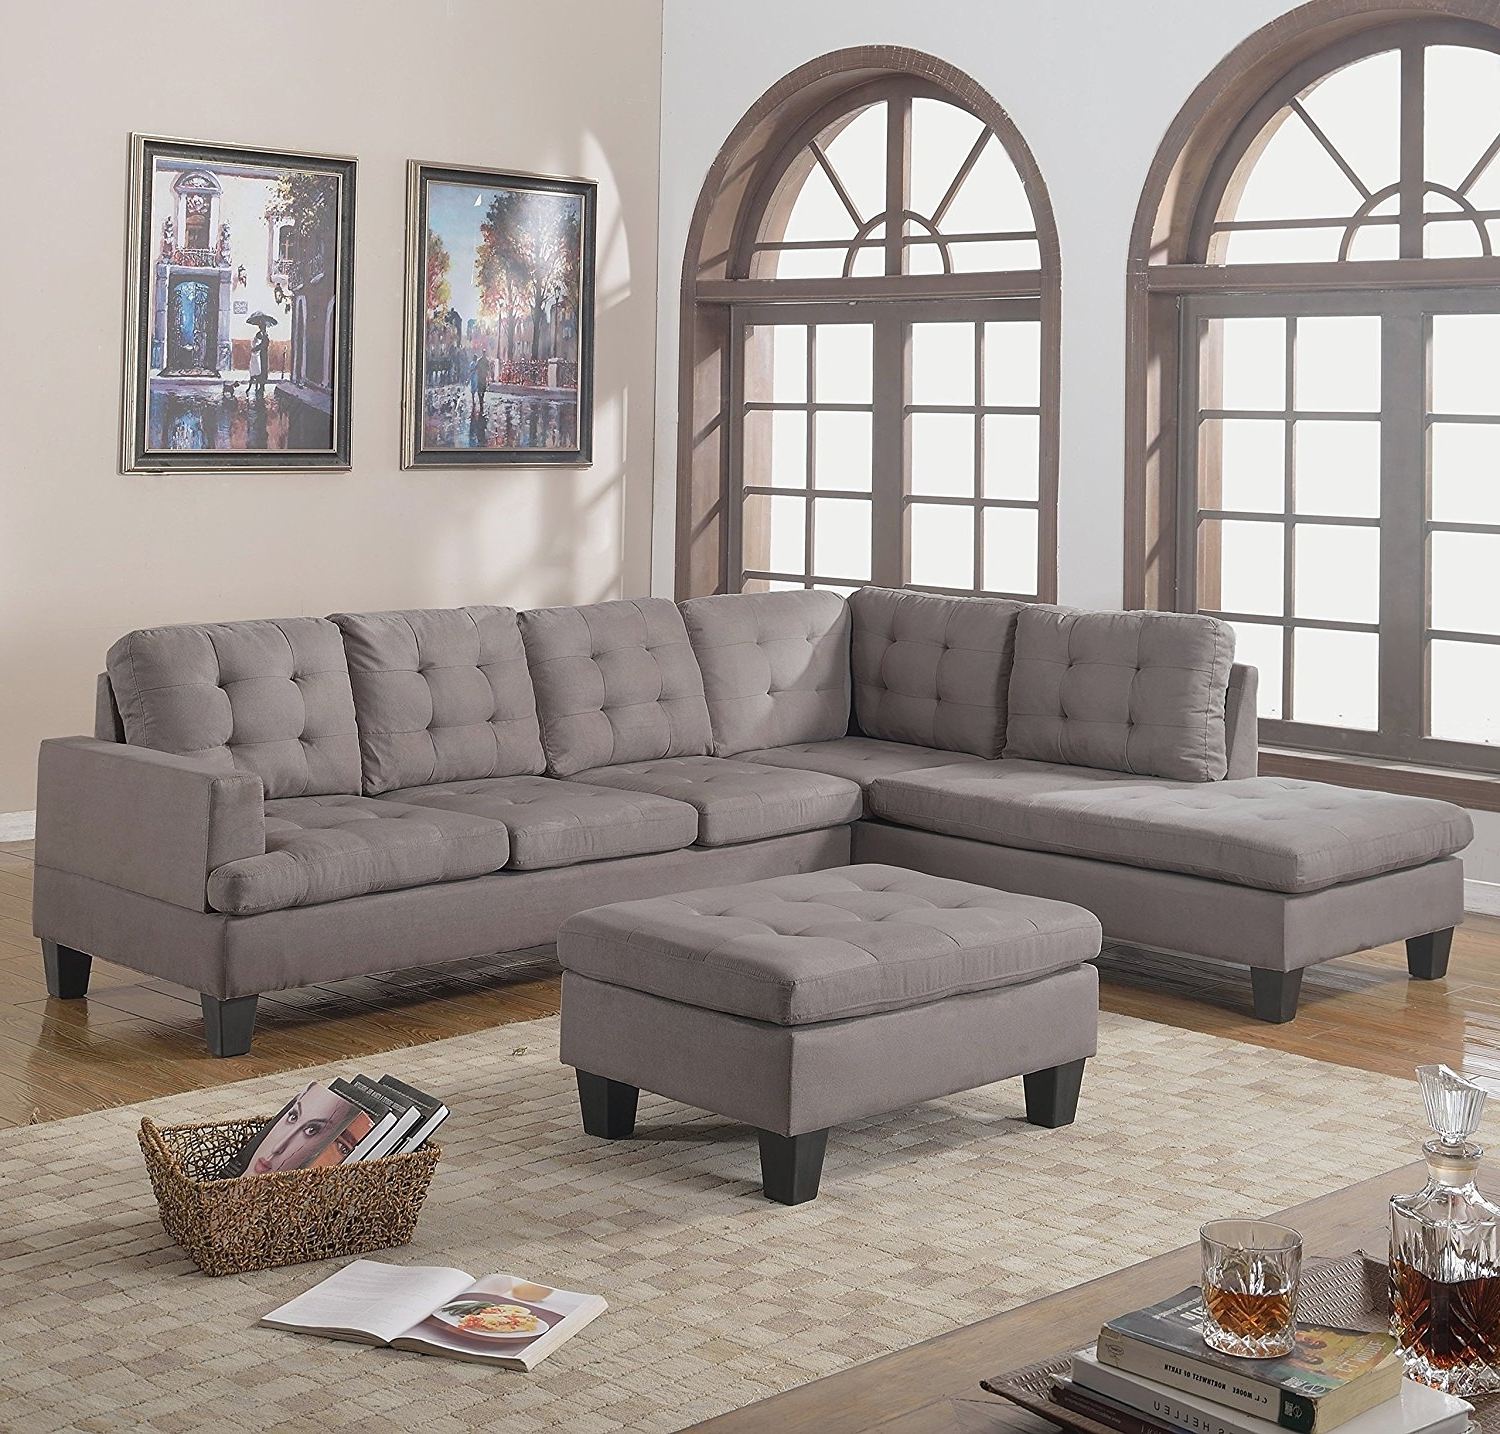 Fashionable Amazon: Divano Roma Furniture 3 Piece Reversible Chaise Throughout Reversible Chaise Sectional Sofas (View 4 of 15)